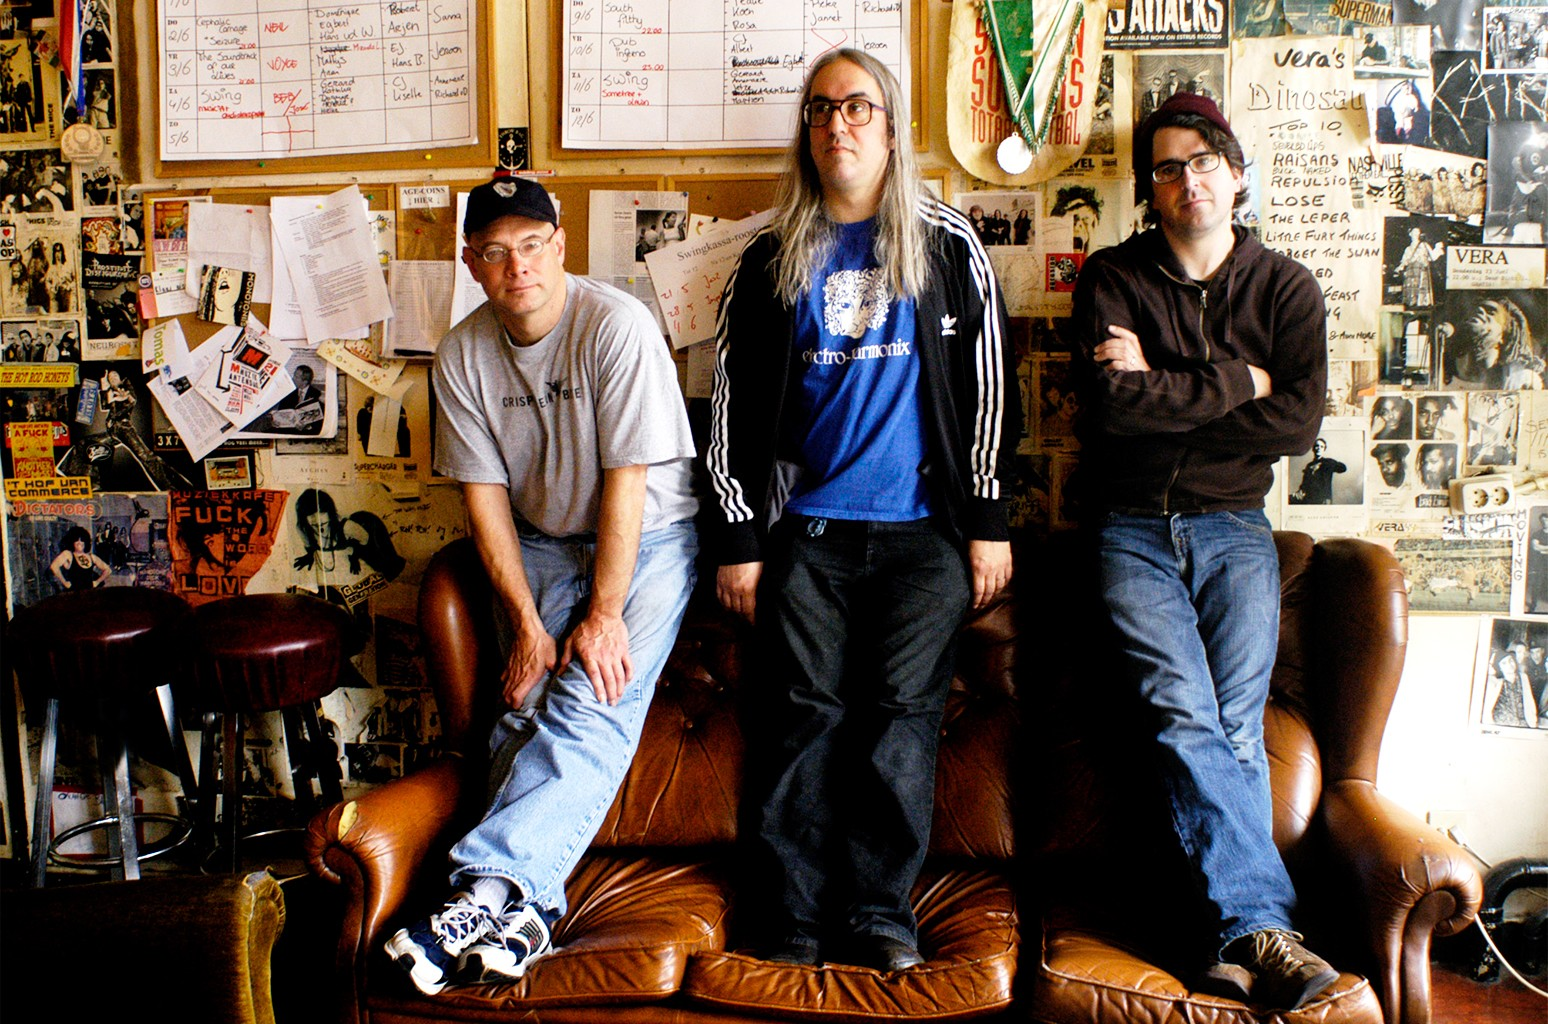 Dinosaur Jr photographed in 2005.